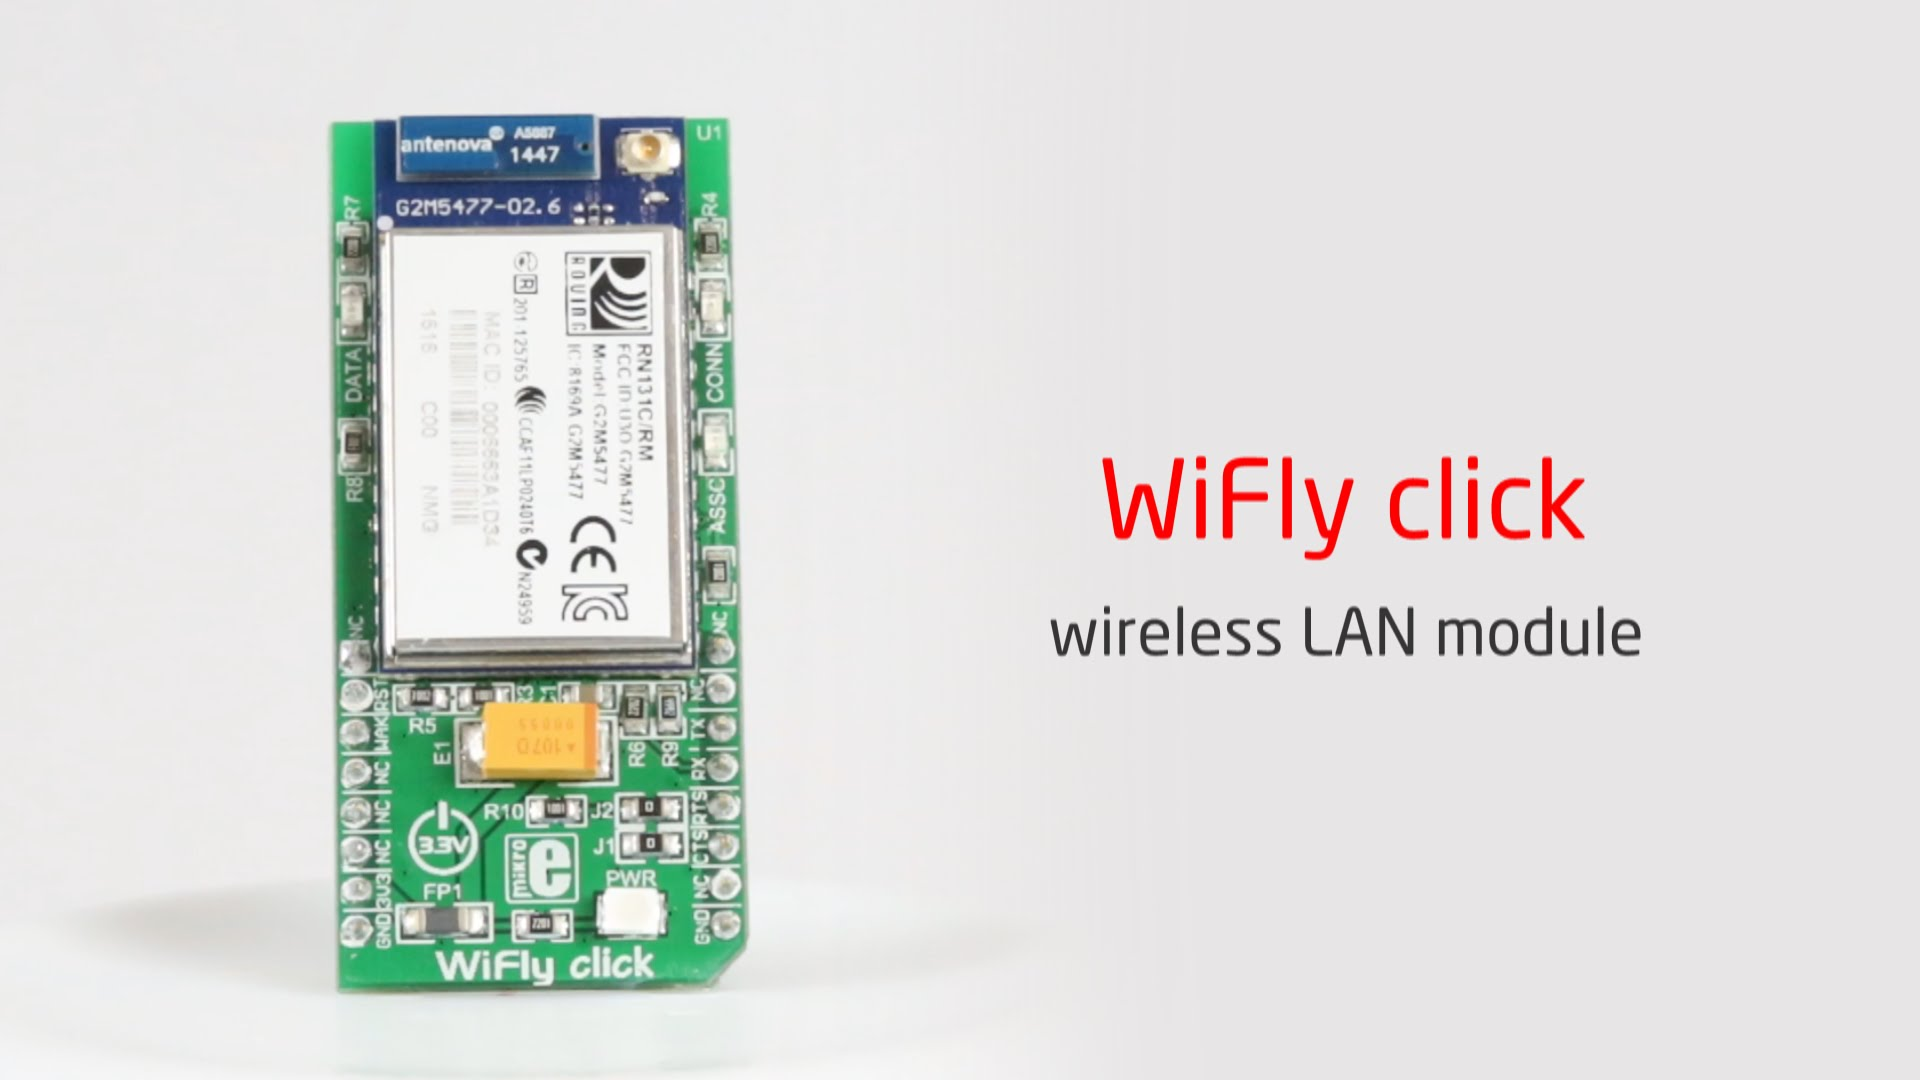 Connect your devices to the internet on the fly, with WiFly click